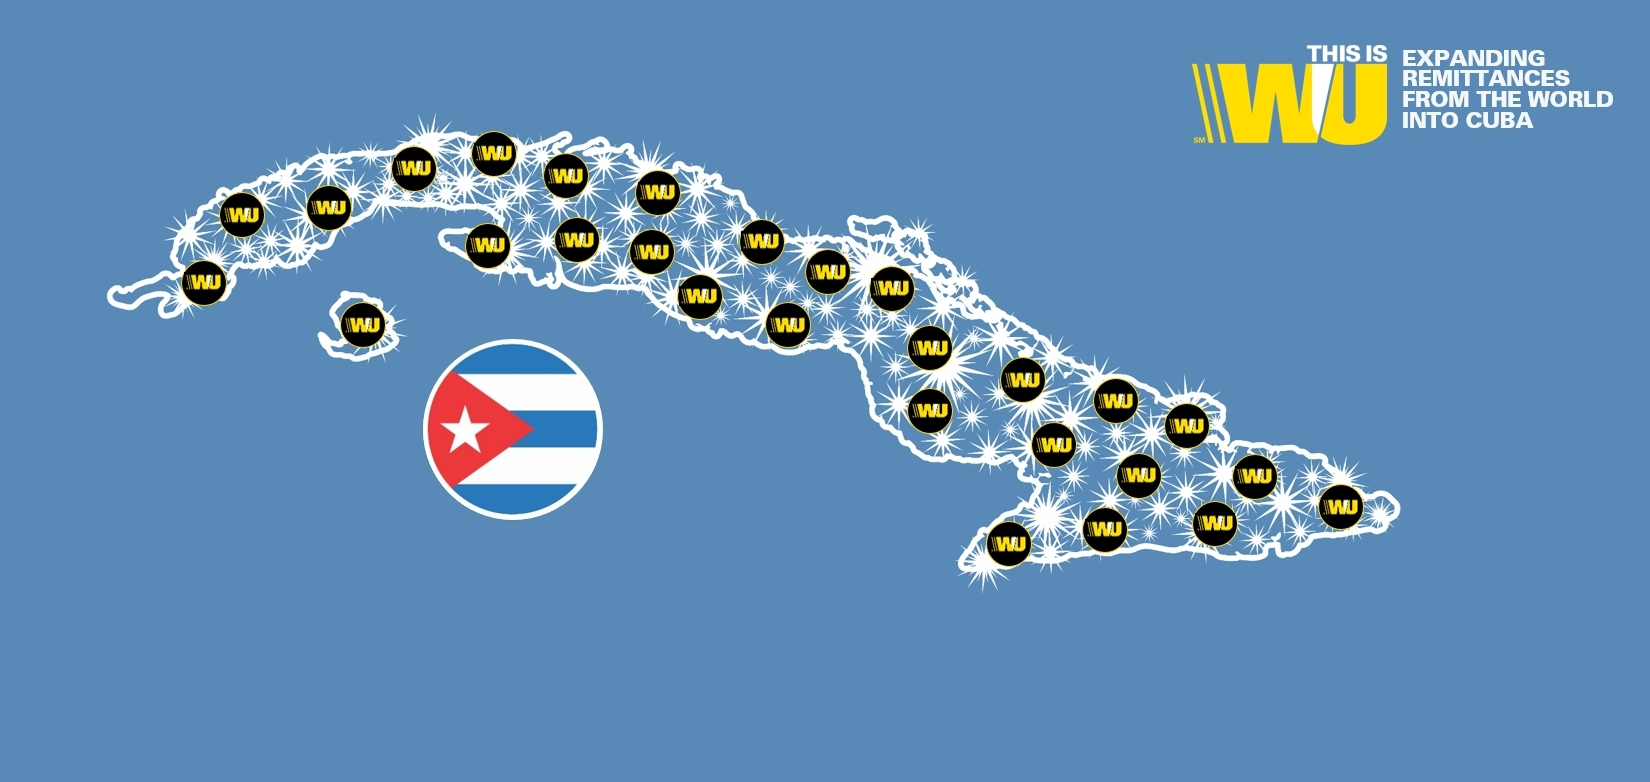 Western Union Expands in Cuba: Connects the World | Business Wire